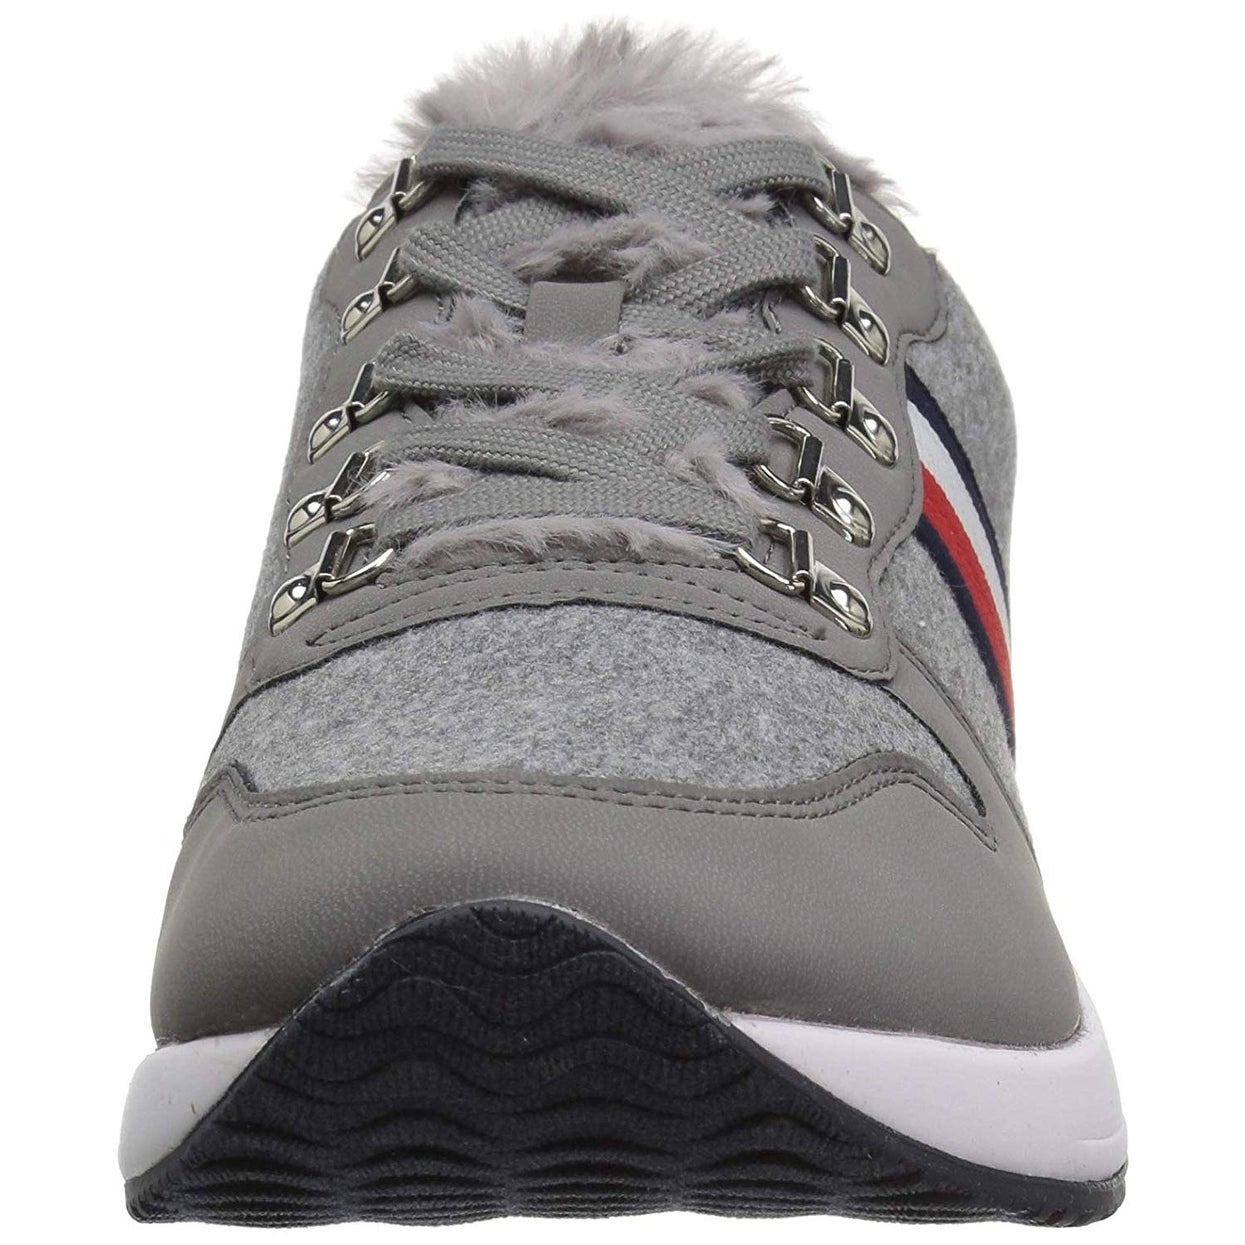 18cfa200 Shop Tommy Hilfiger Women's Riplee Sneaker - Free Shipping On Orders Over  $45 - Overstock - 27428834